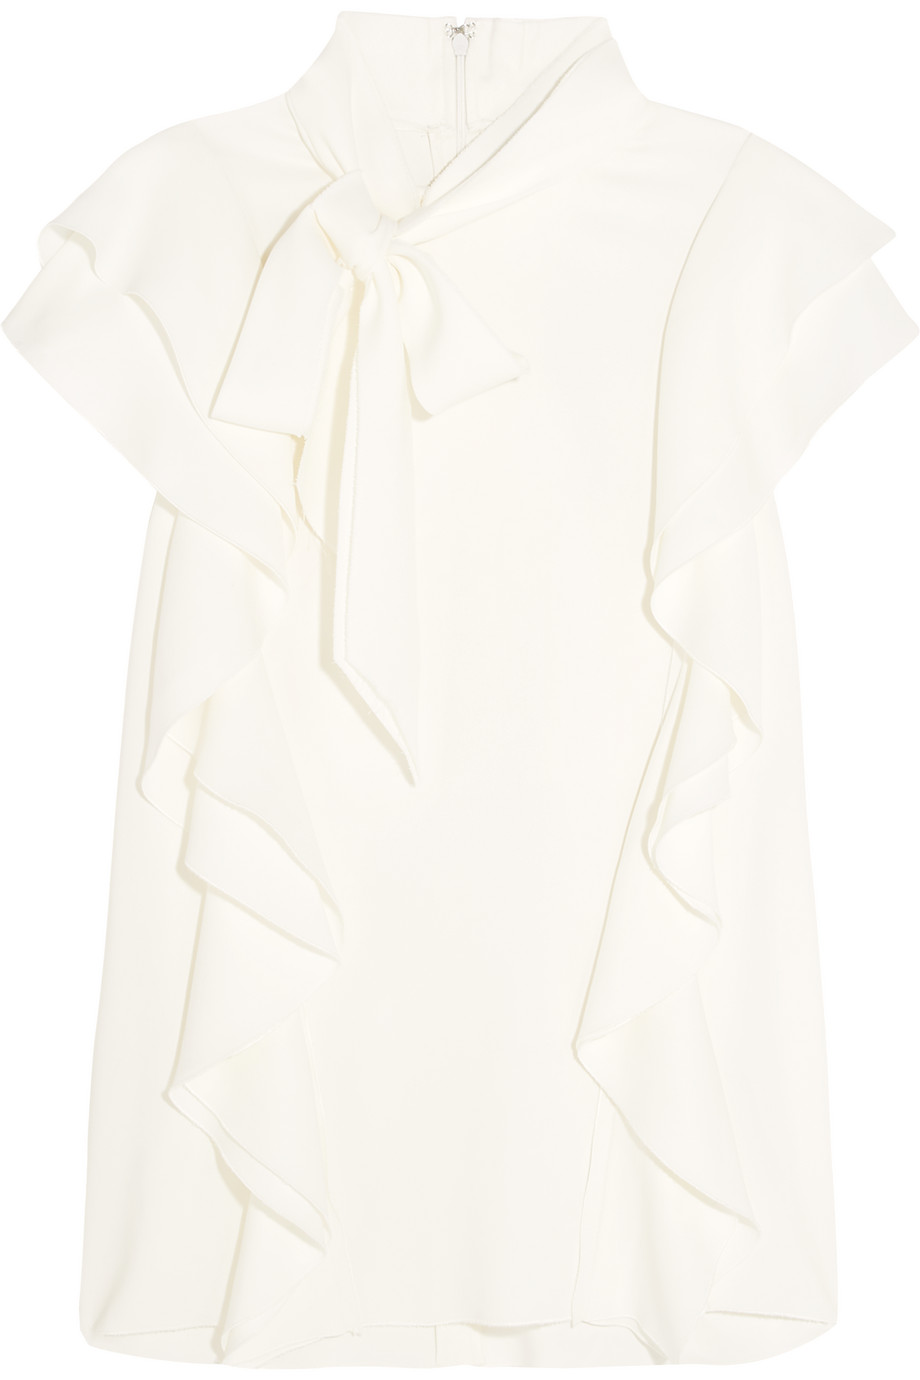 Lanvin Pussy-Bow Ruffled Stretch-Crepe Top, White, Women's, Size: 42